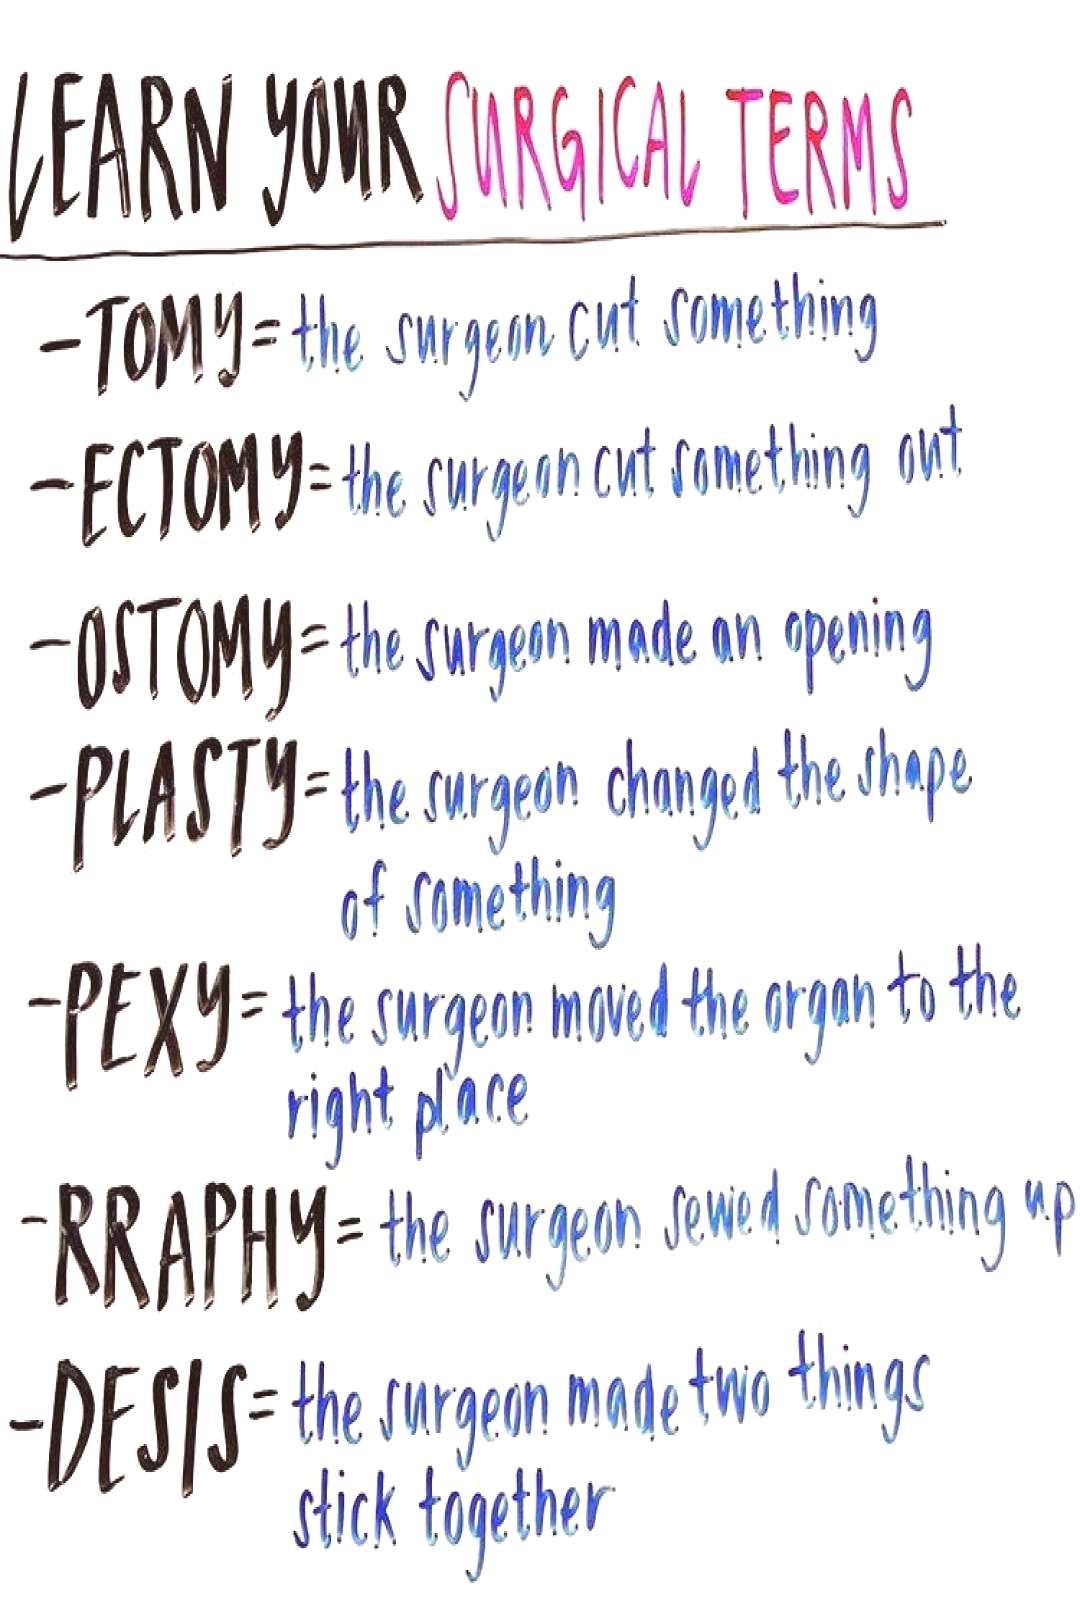 Easy way to learn surgical terms! . . . . . . Easy way to learn surgical terms! . . . . . .